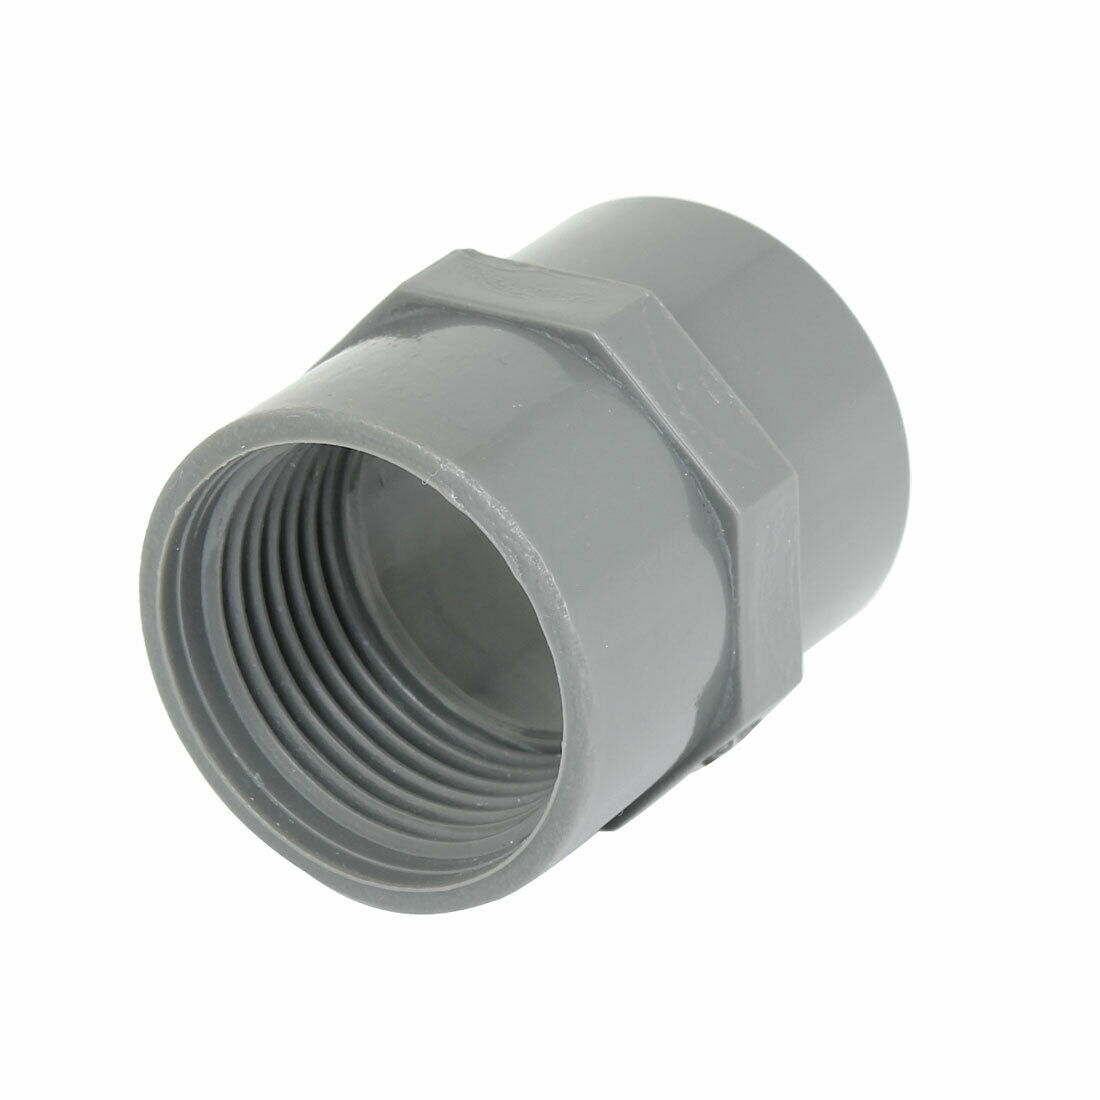 32mm 1 pt female thread pvc straight pipe tube adapter connector gray picclick. Black Bedroom Furniture Sets. Home Design Ideas